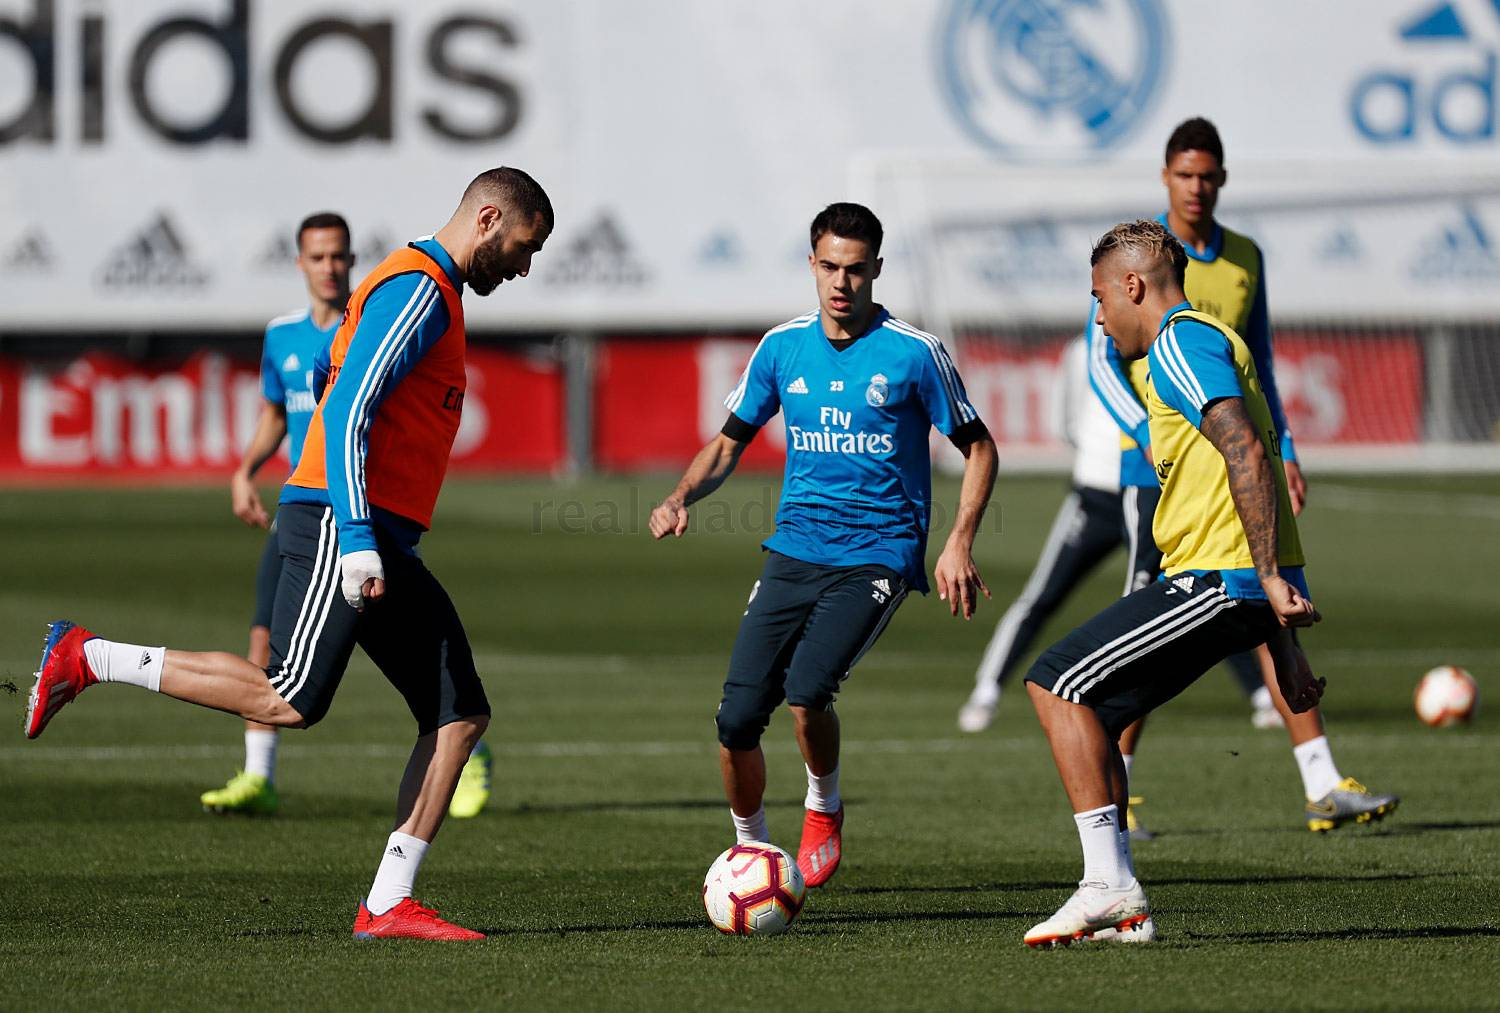 Real Madrid - Entrenamiento del Real Madrid - 01-03-2019